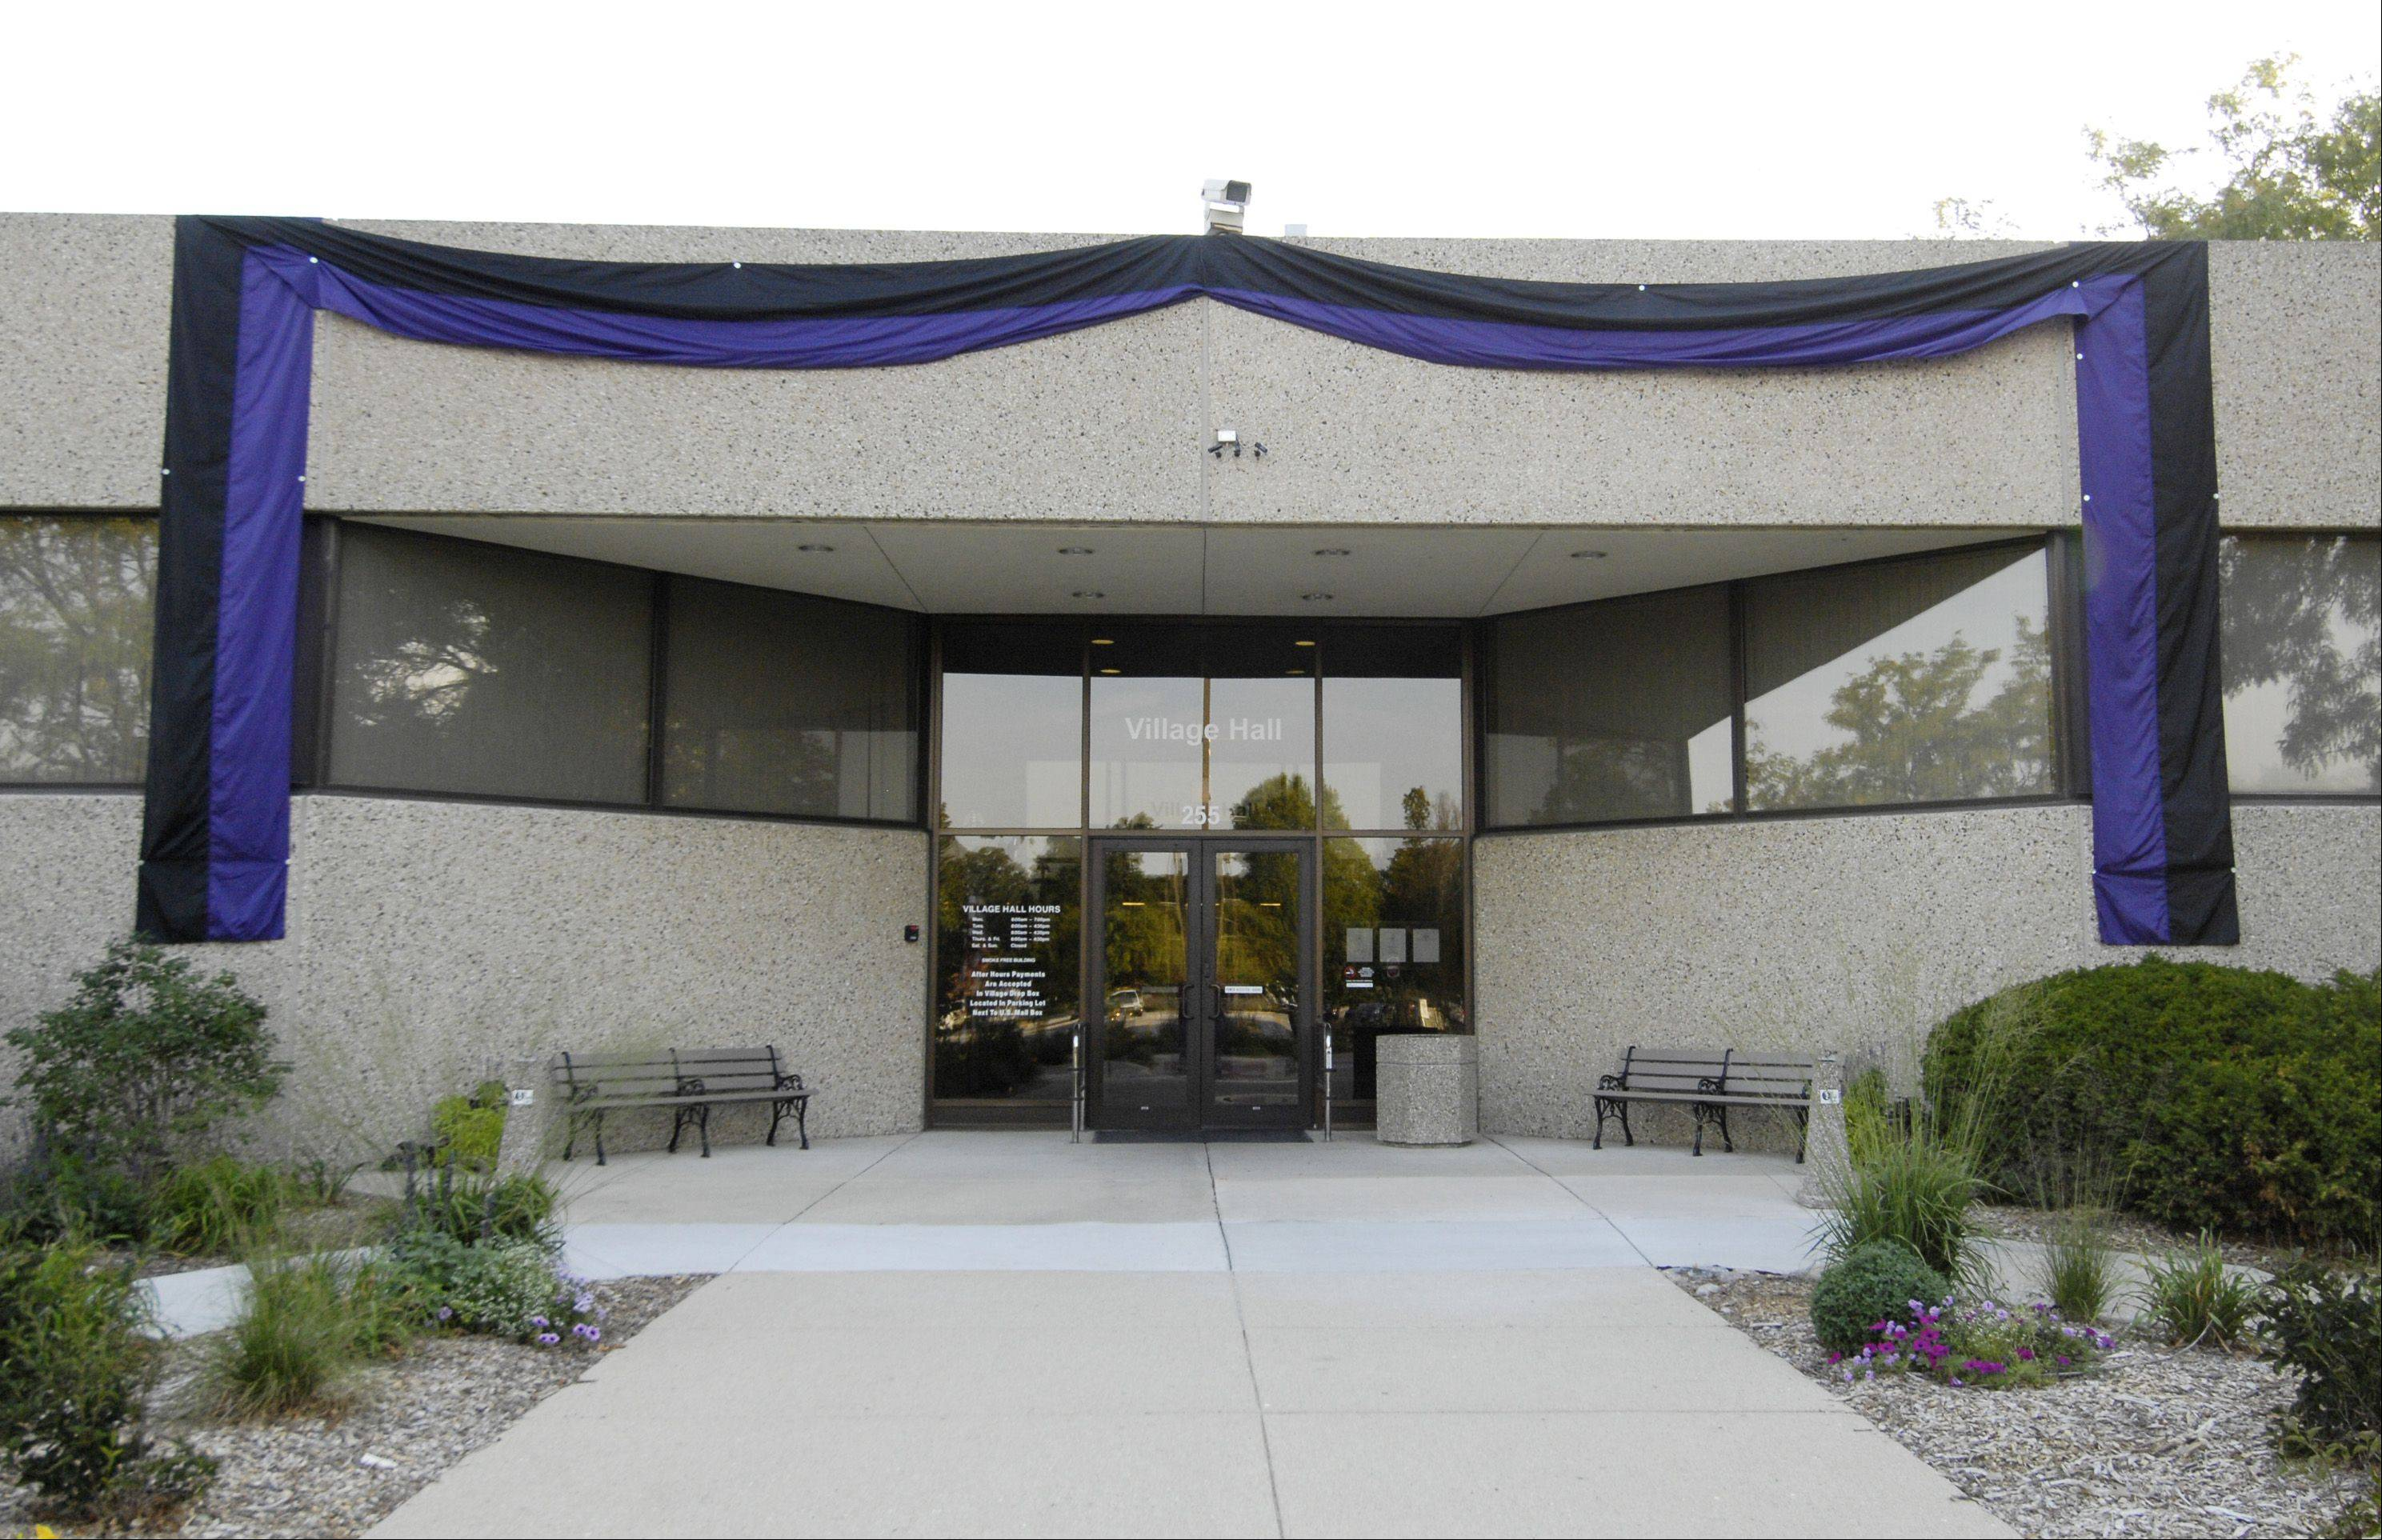 Black and purple bunting drapes Lombard village hall in memory of Village President Bill Mueller who died August 18.